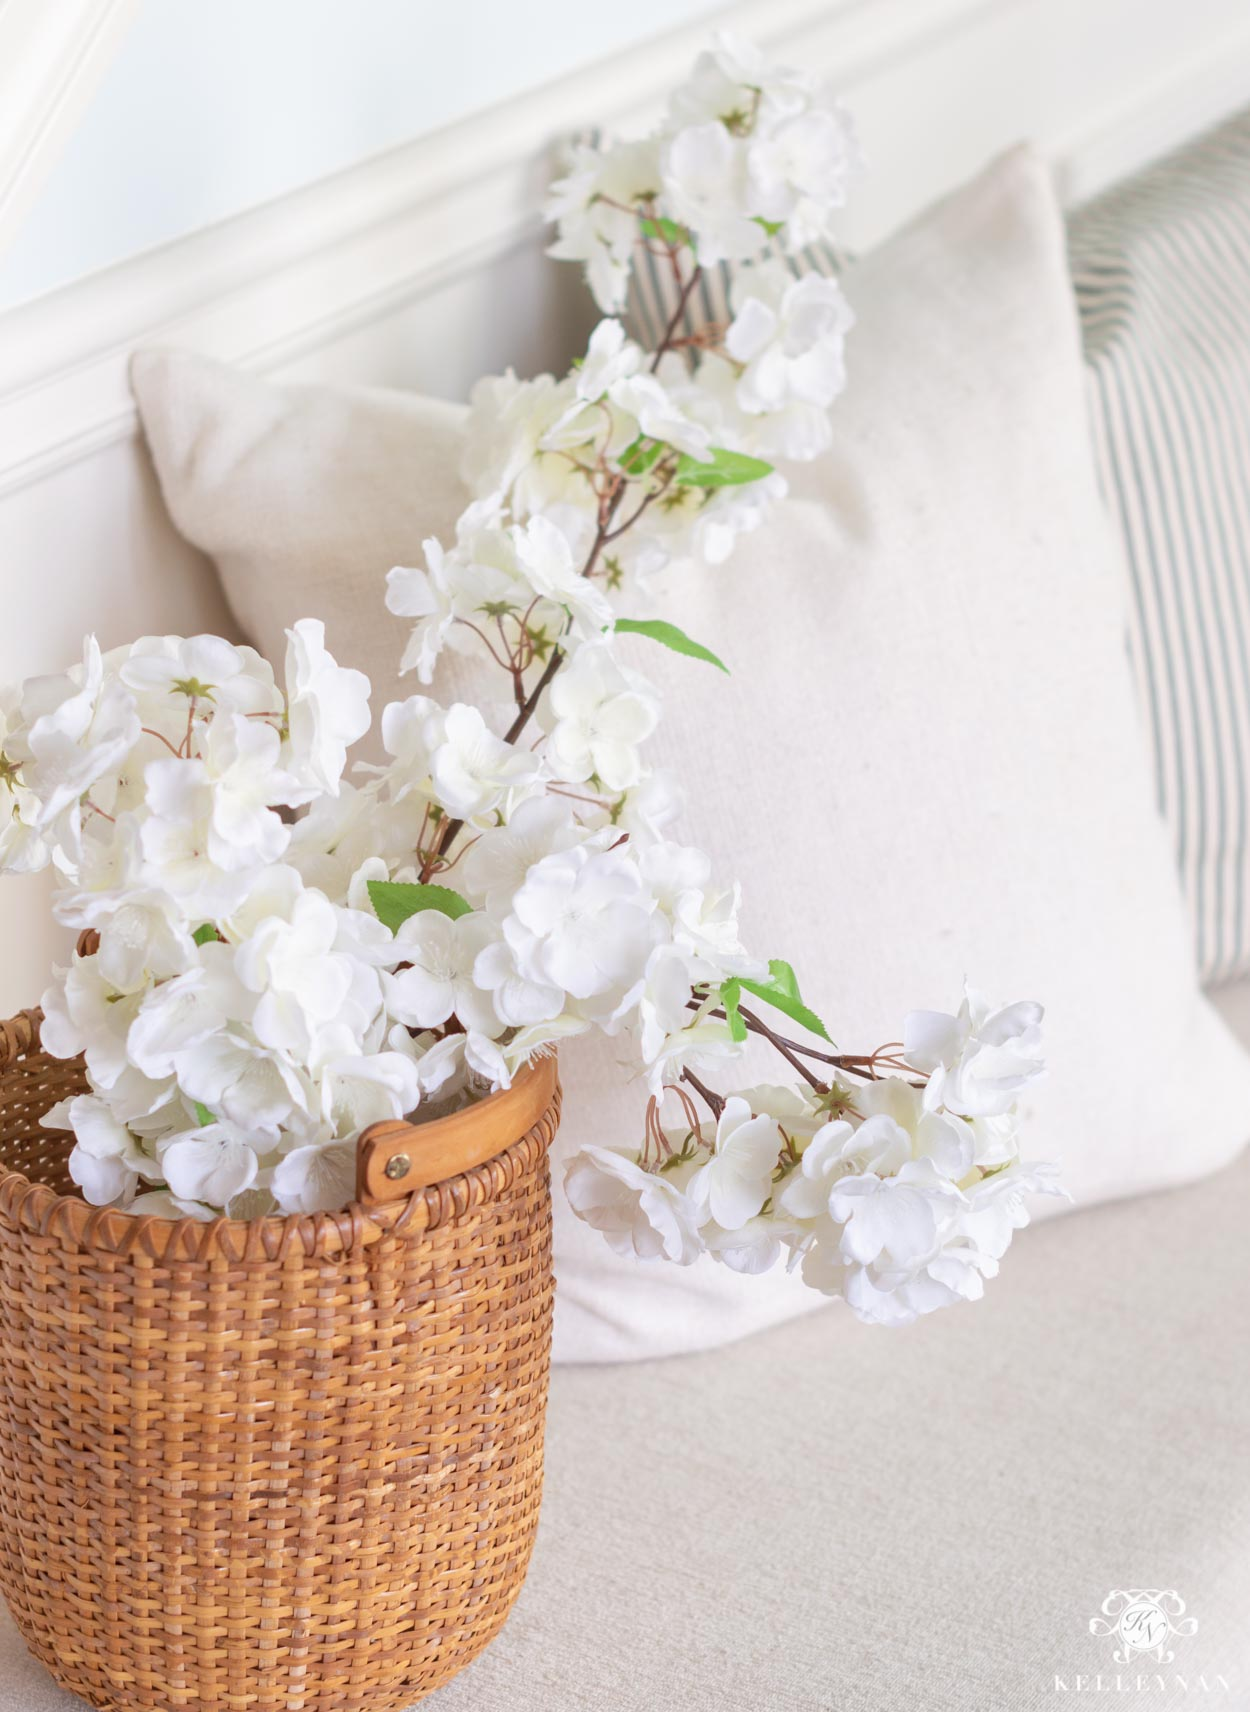 The Best Faux Cherry Blossom Stems and Other Fake Flower Favorites